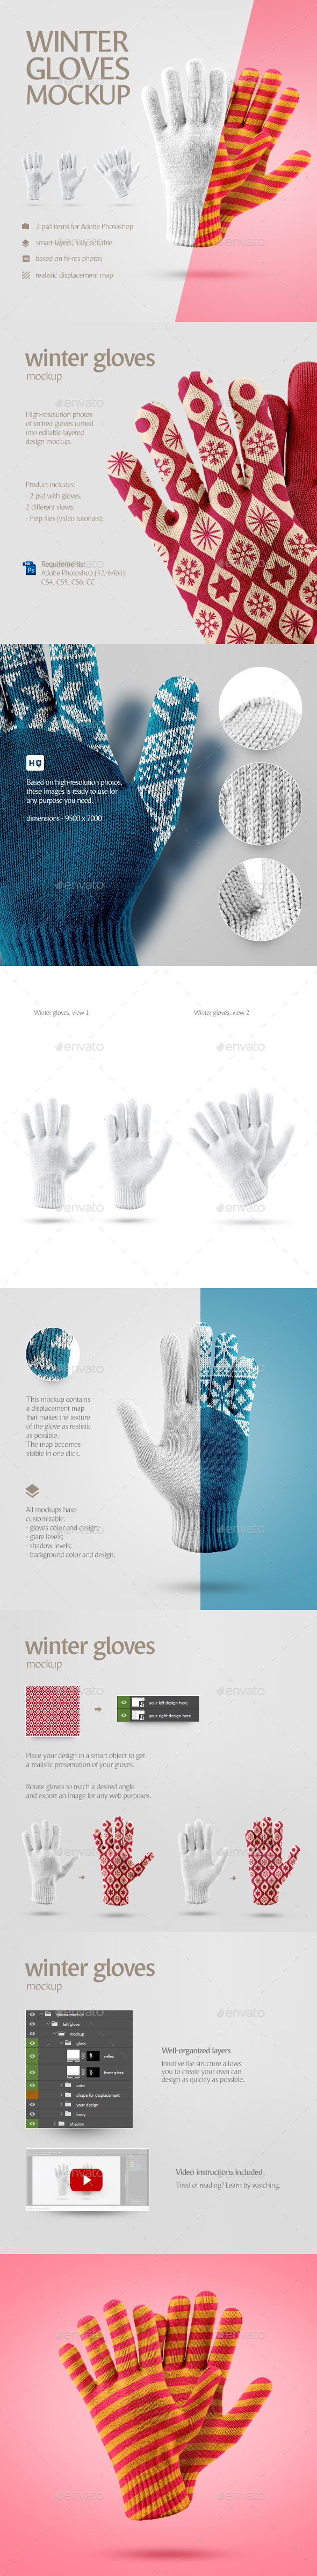 GraphicRiver Winter Gloves Mockup 20992805